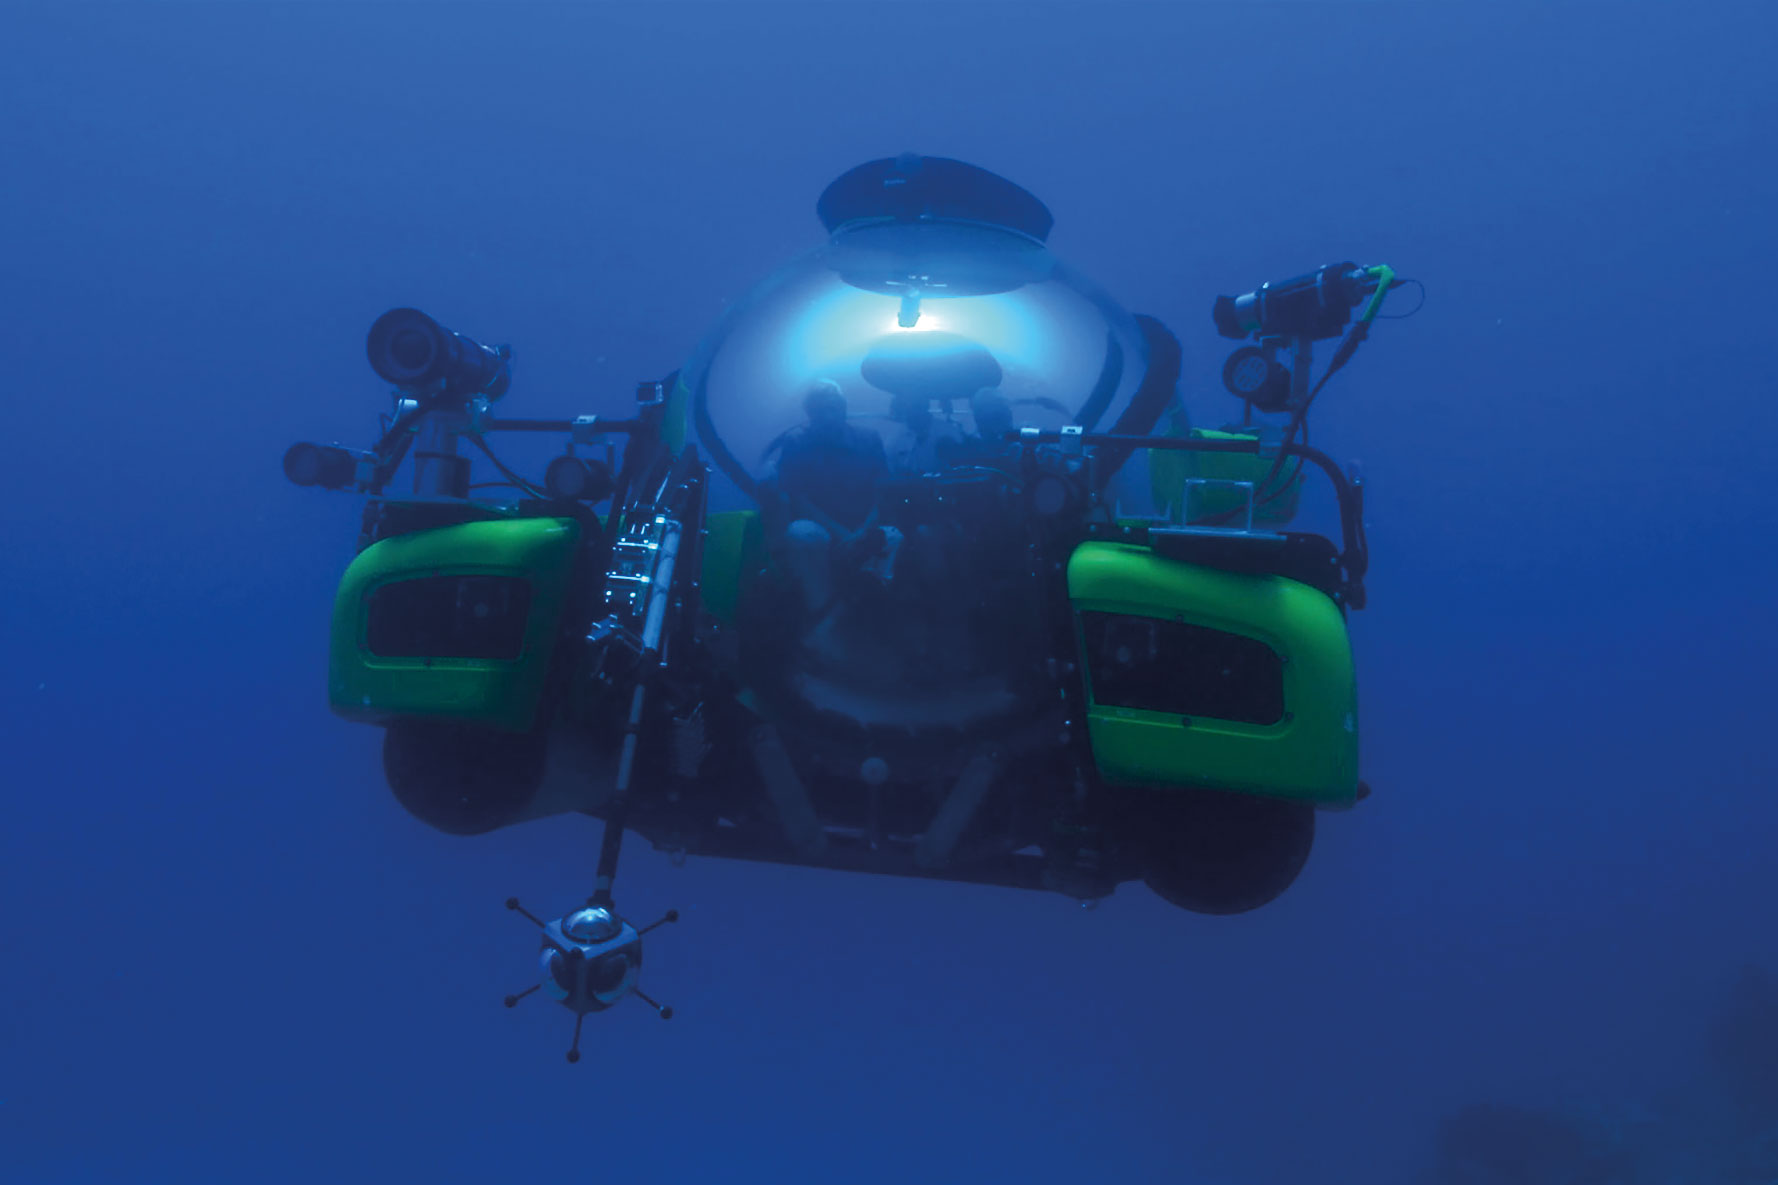 IMAGE-2-David-Attenborough-dives-on-the-GBR-in-a-Triton-Submarine,-which-is-being-filmed-by-a-Virtual-Reality-rig-(c)-Atlantic-Productions